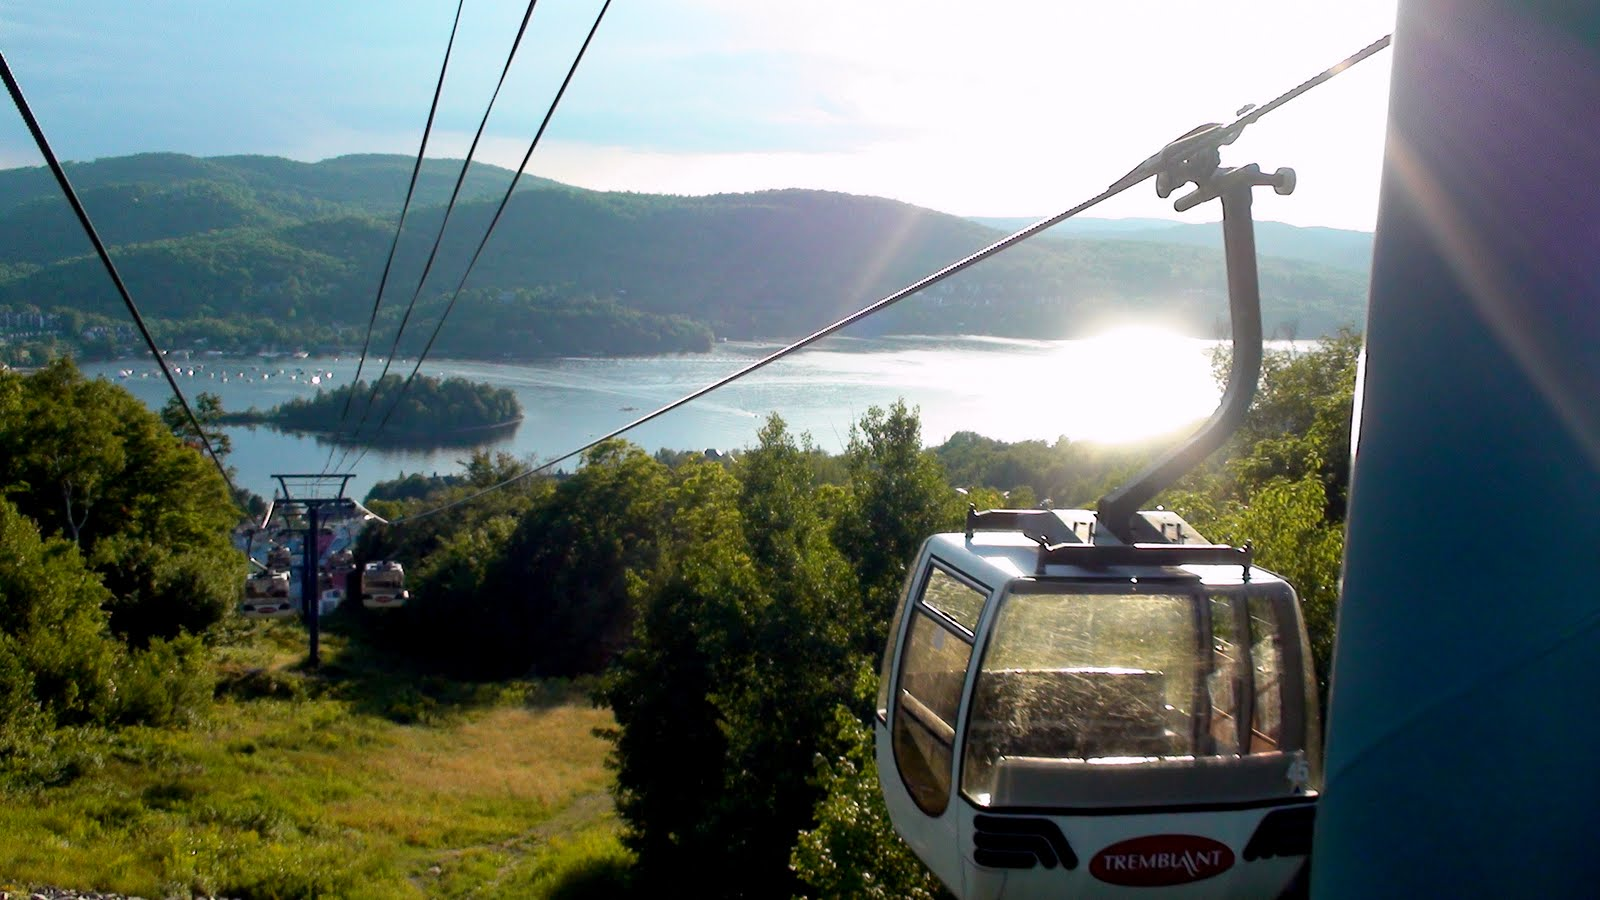 Taking the gondola up the mountain. Lac Tremblant below.